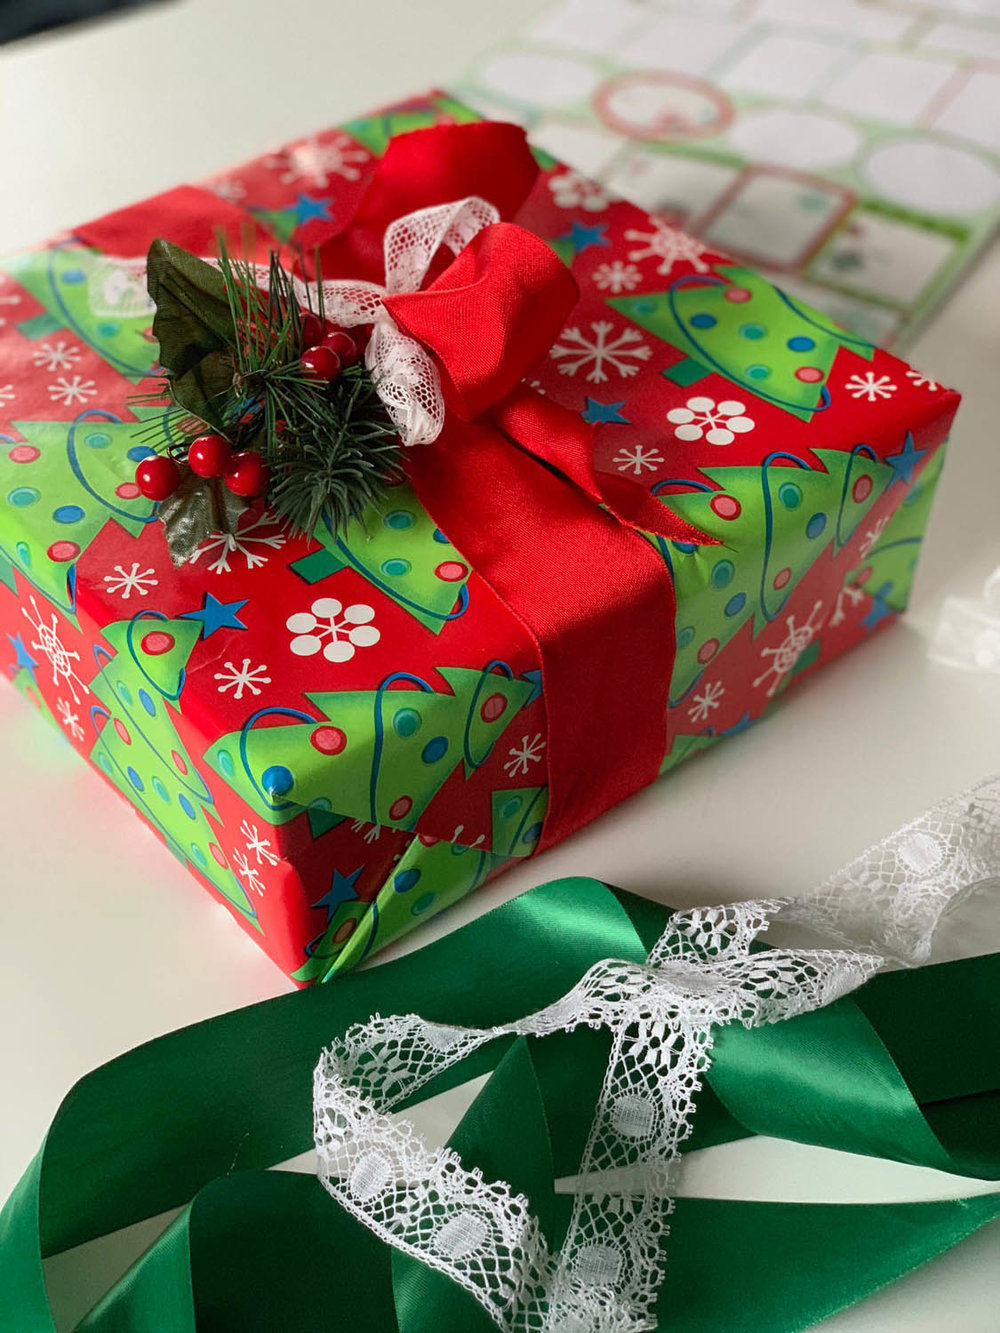 read and green Christmas gift trimmed with ribbons and greenery embellishment